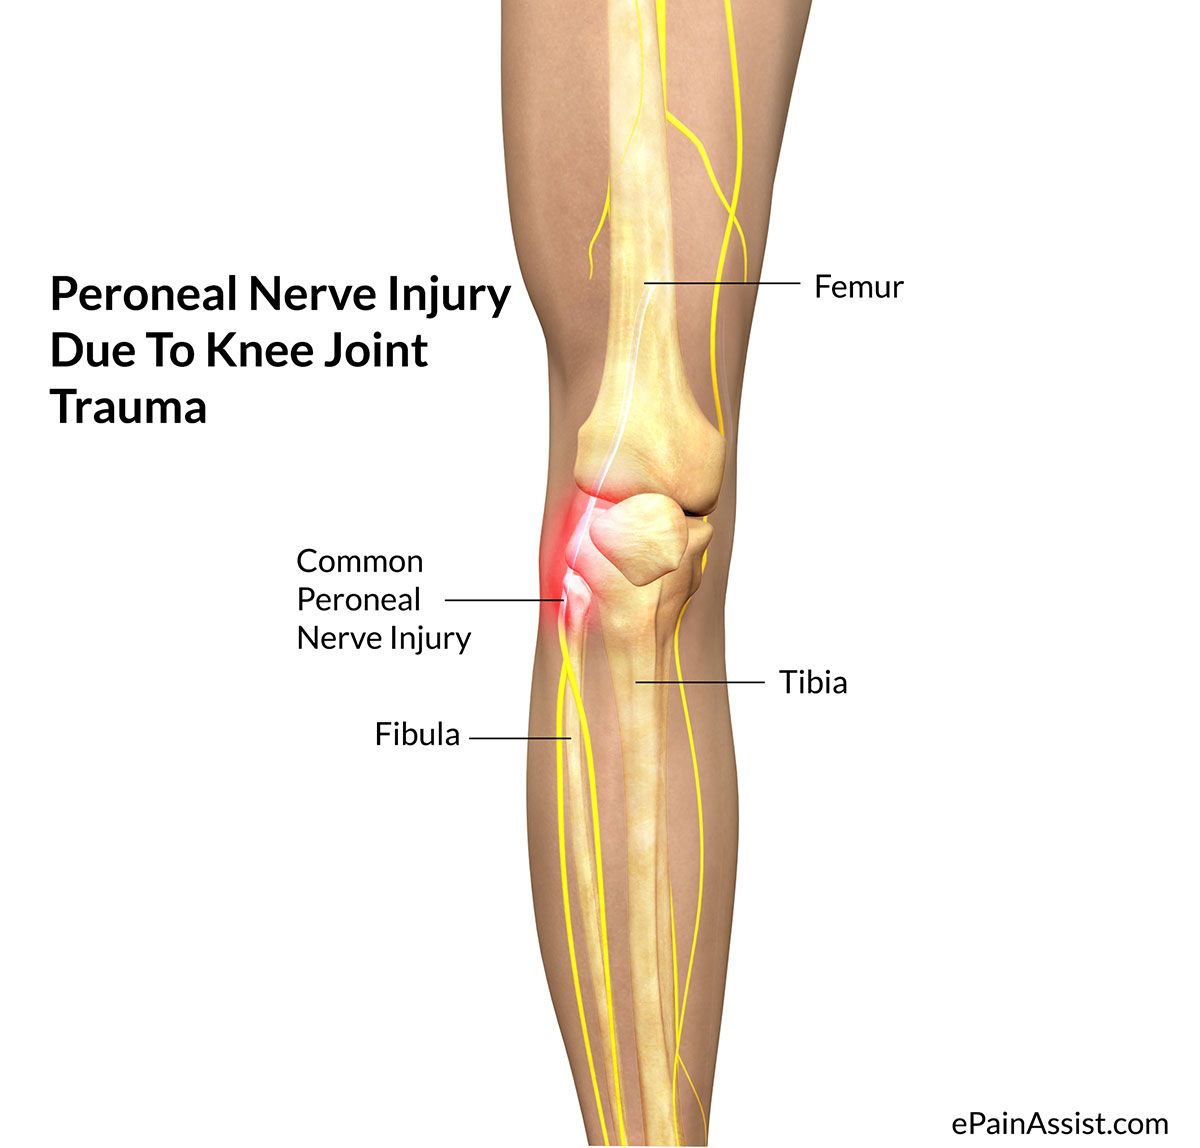 Peroneal Nerve Injury - Treatment, Causes, Symptoms | Pinterest